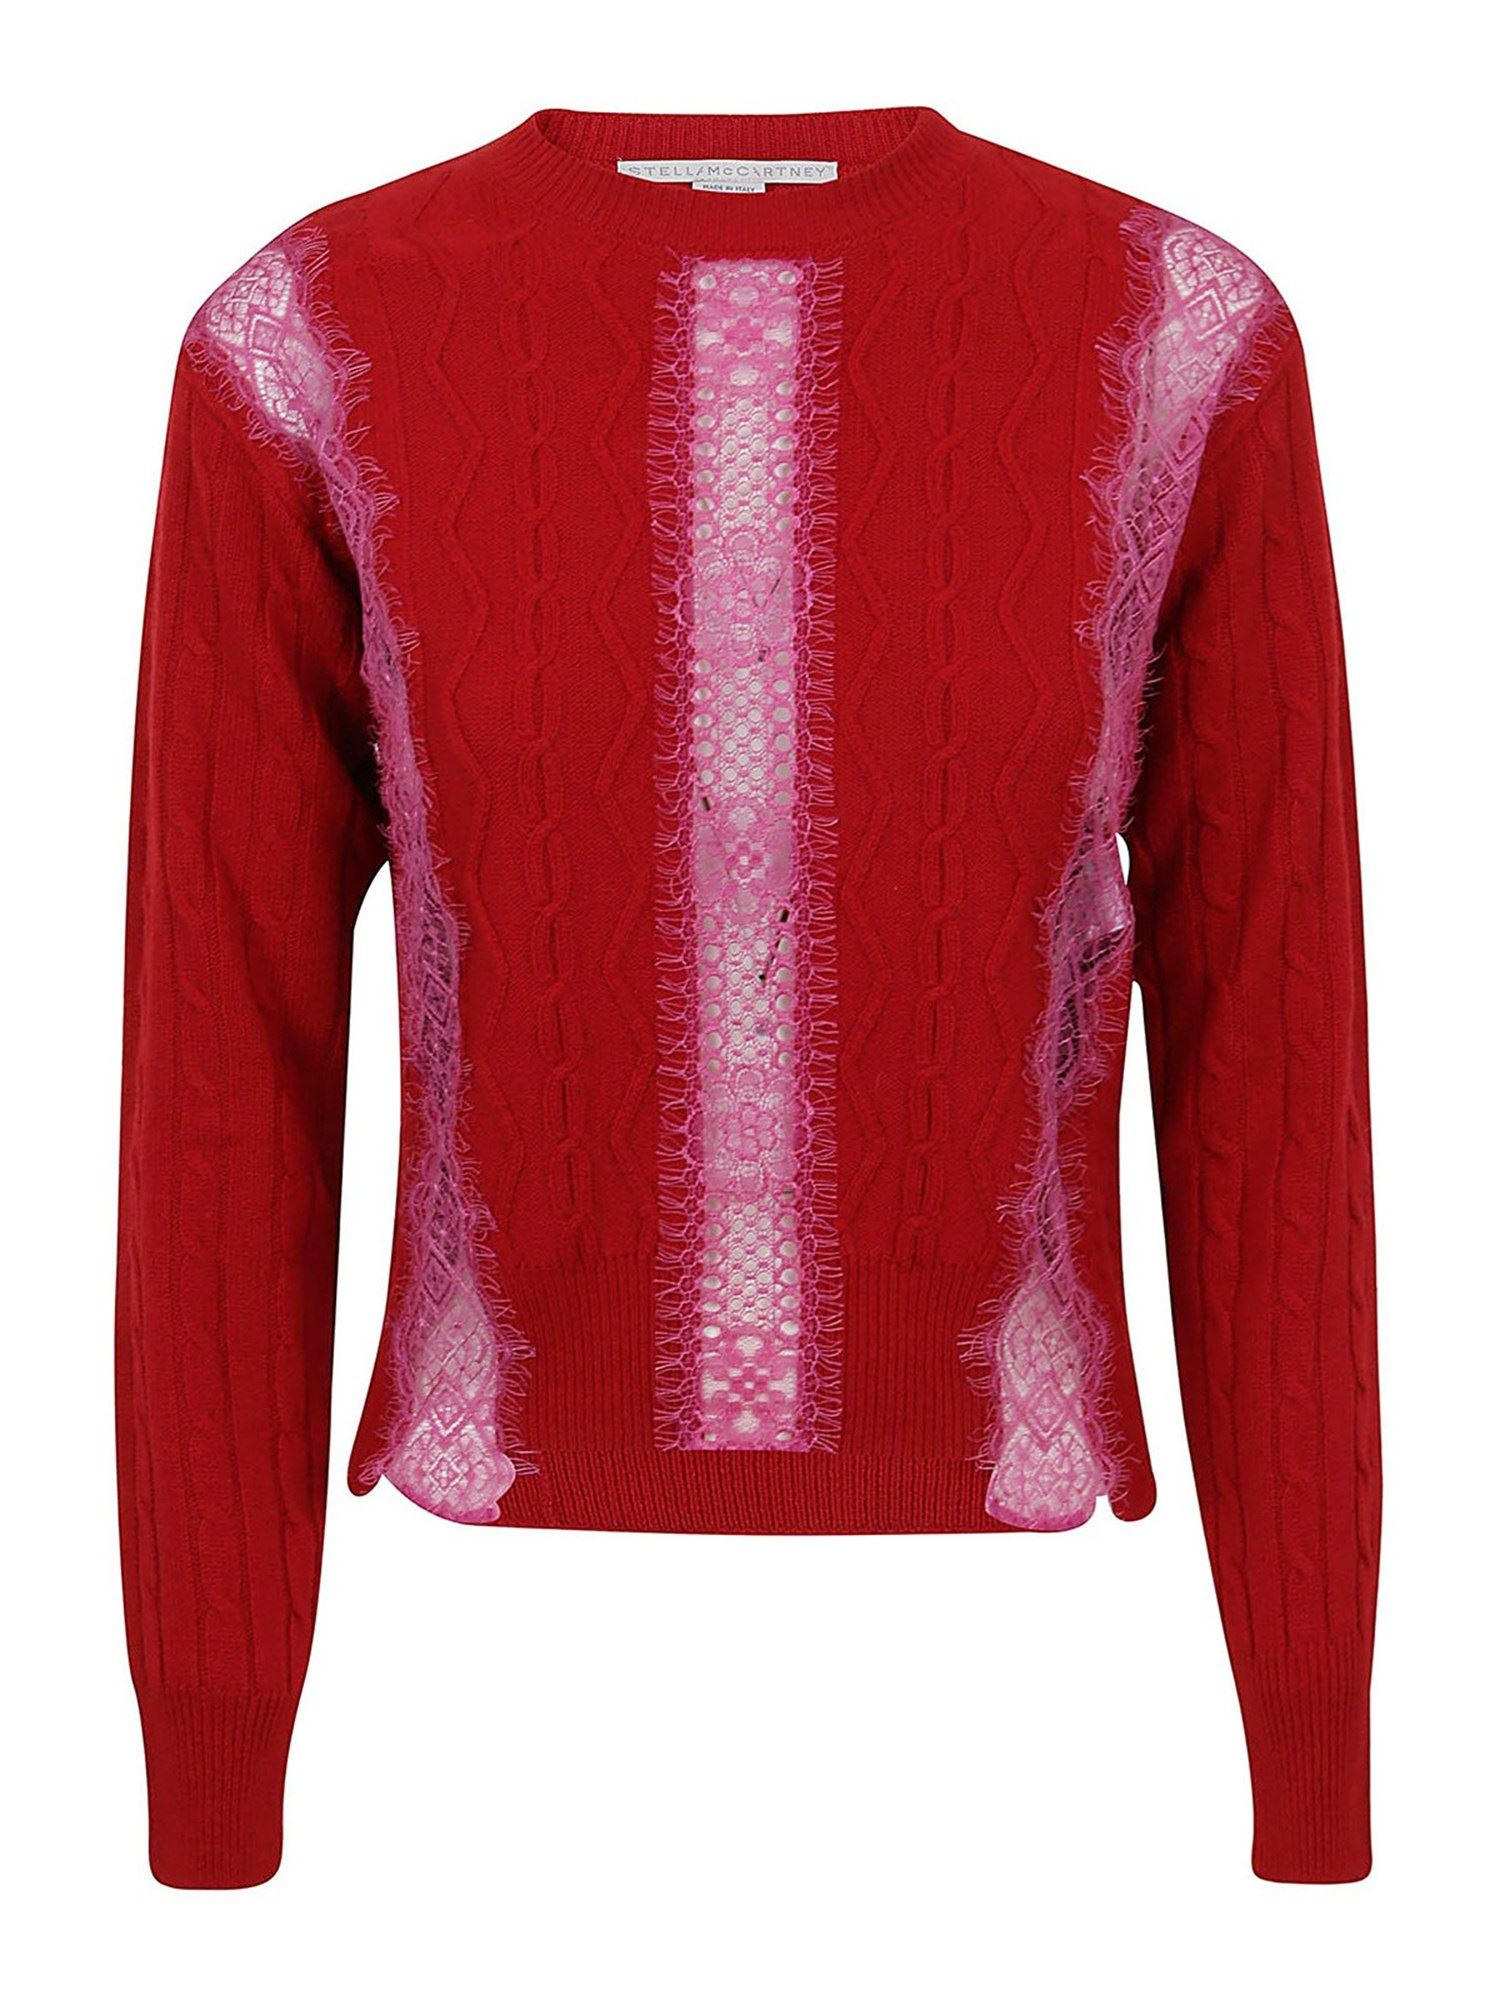 Stella Mccartney STELLA MCCARTNEY CABLE-KNIT CREW-NECK JUMPER IN RED